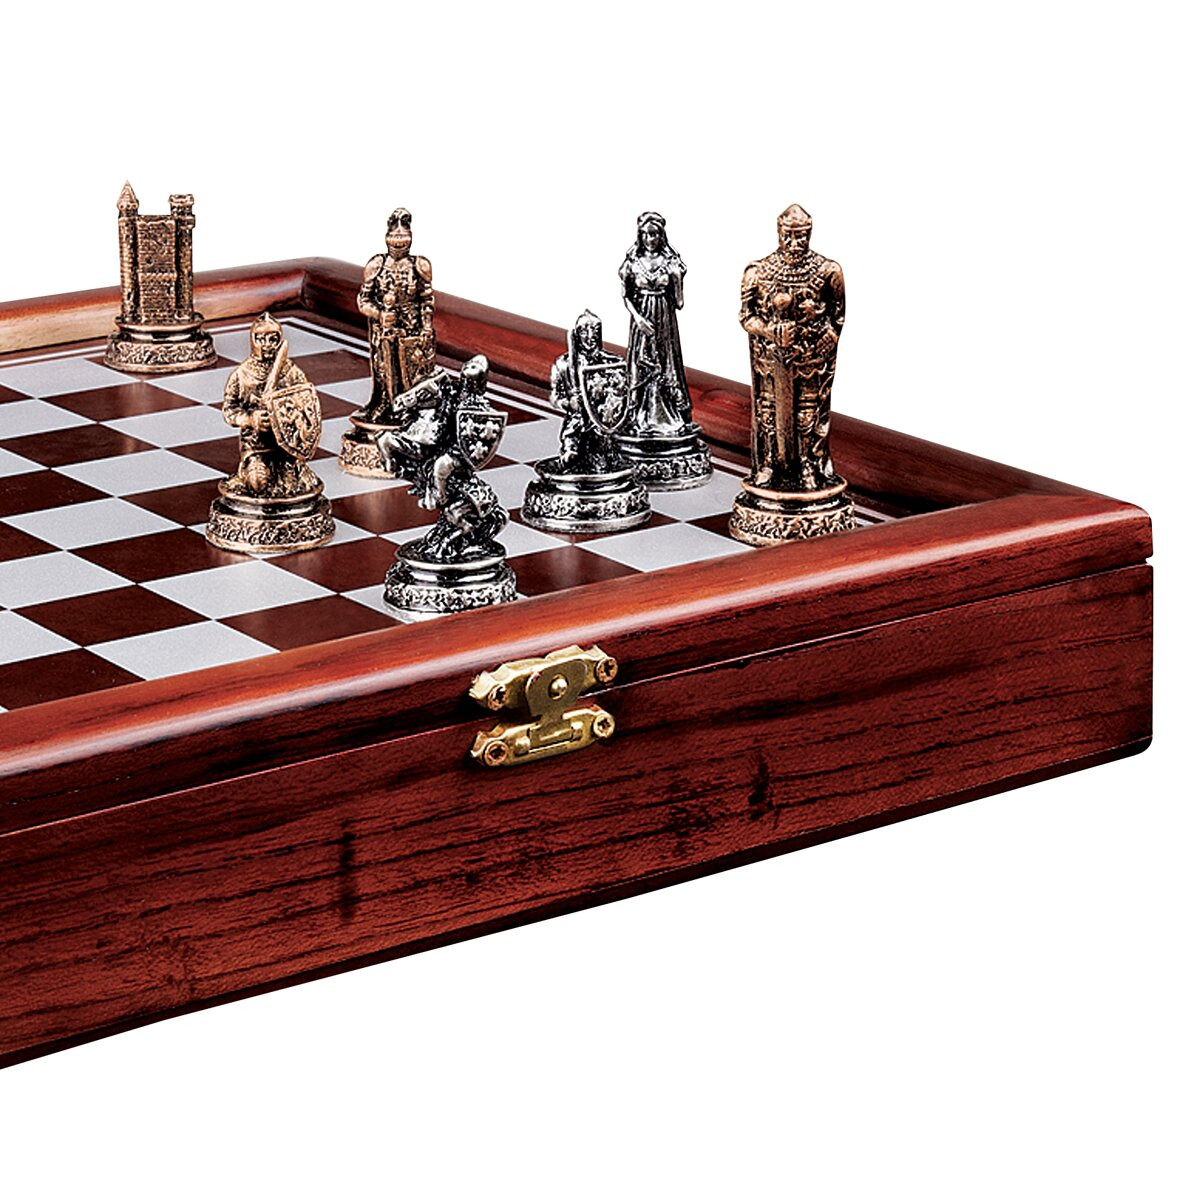 Design toscano decorative knights 39 mortal conflict chess set reviews wayfair - Ornate chess sets ...